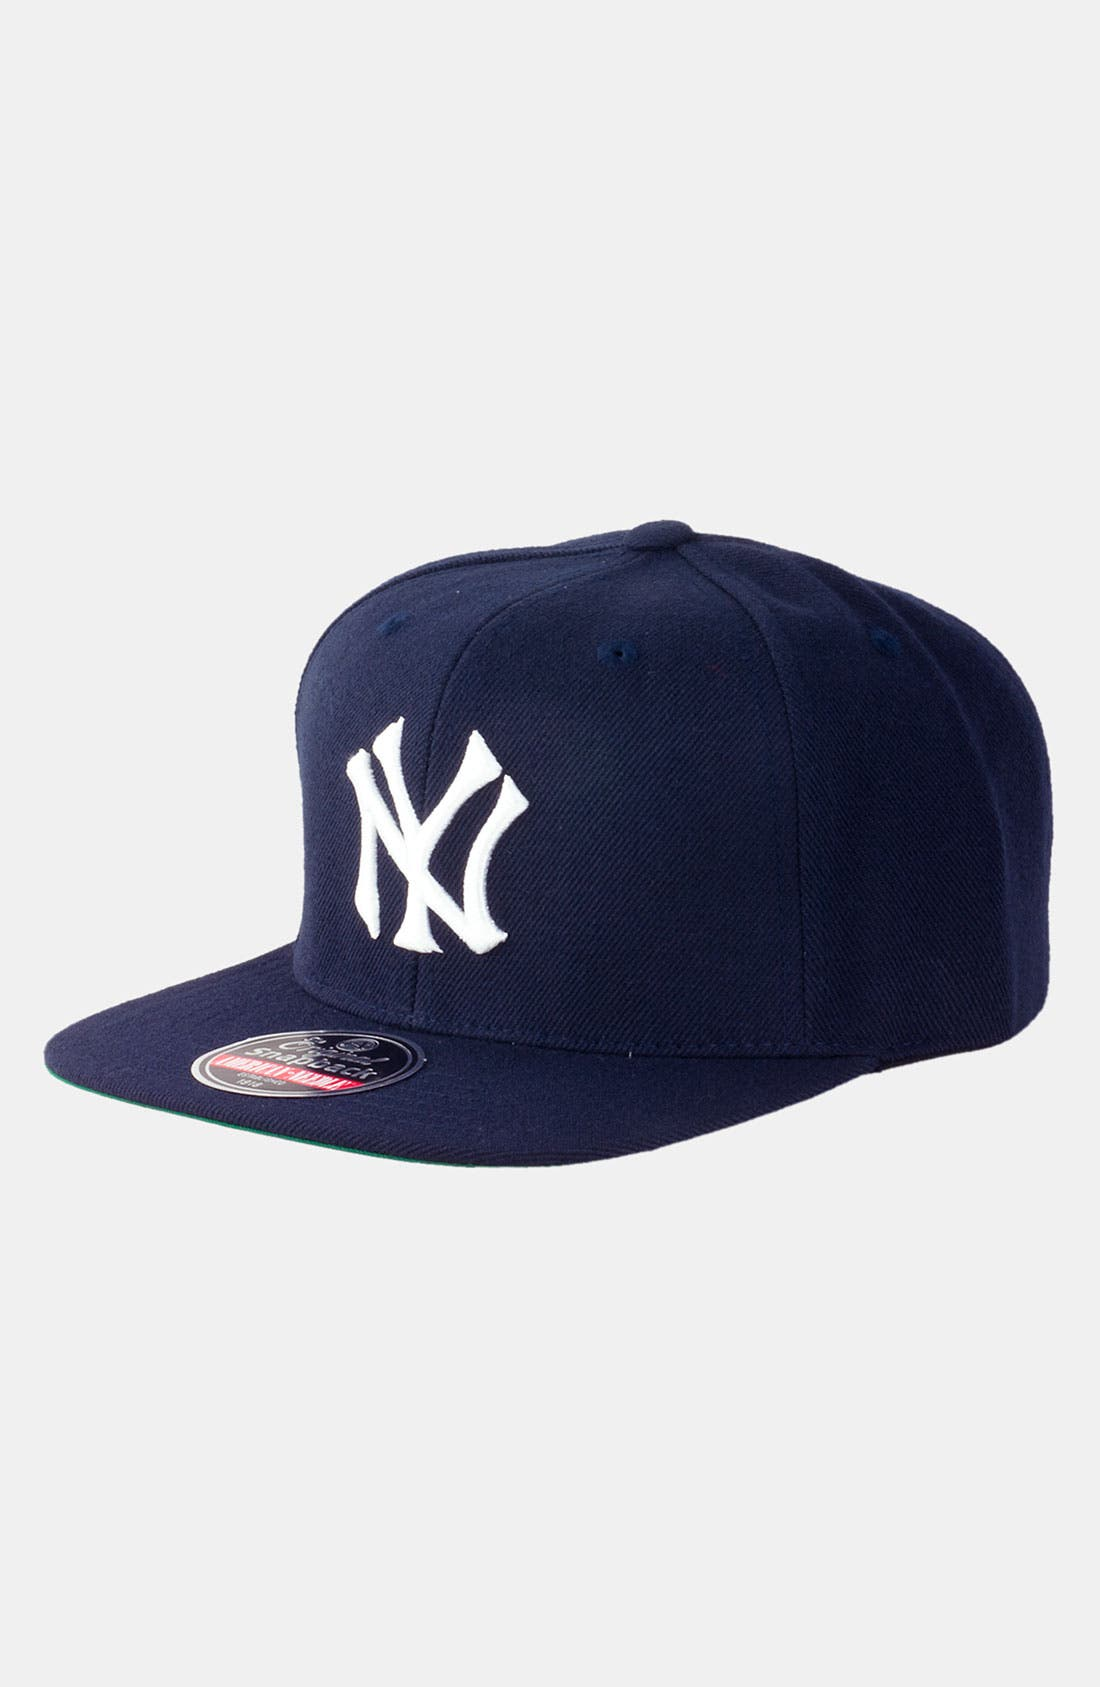 Main Image - American Needle 'New York Yankees - Cooperstown' Snapback Baseball Cap